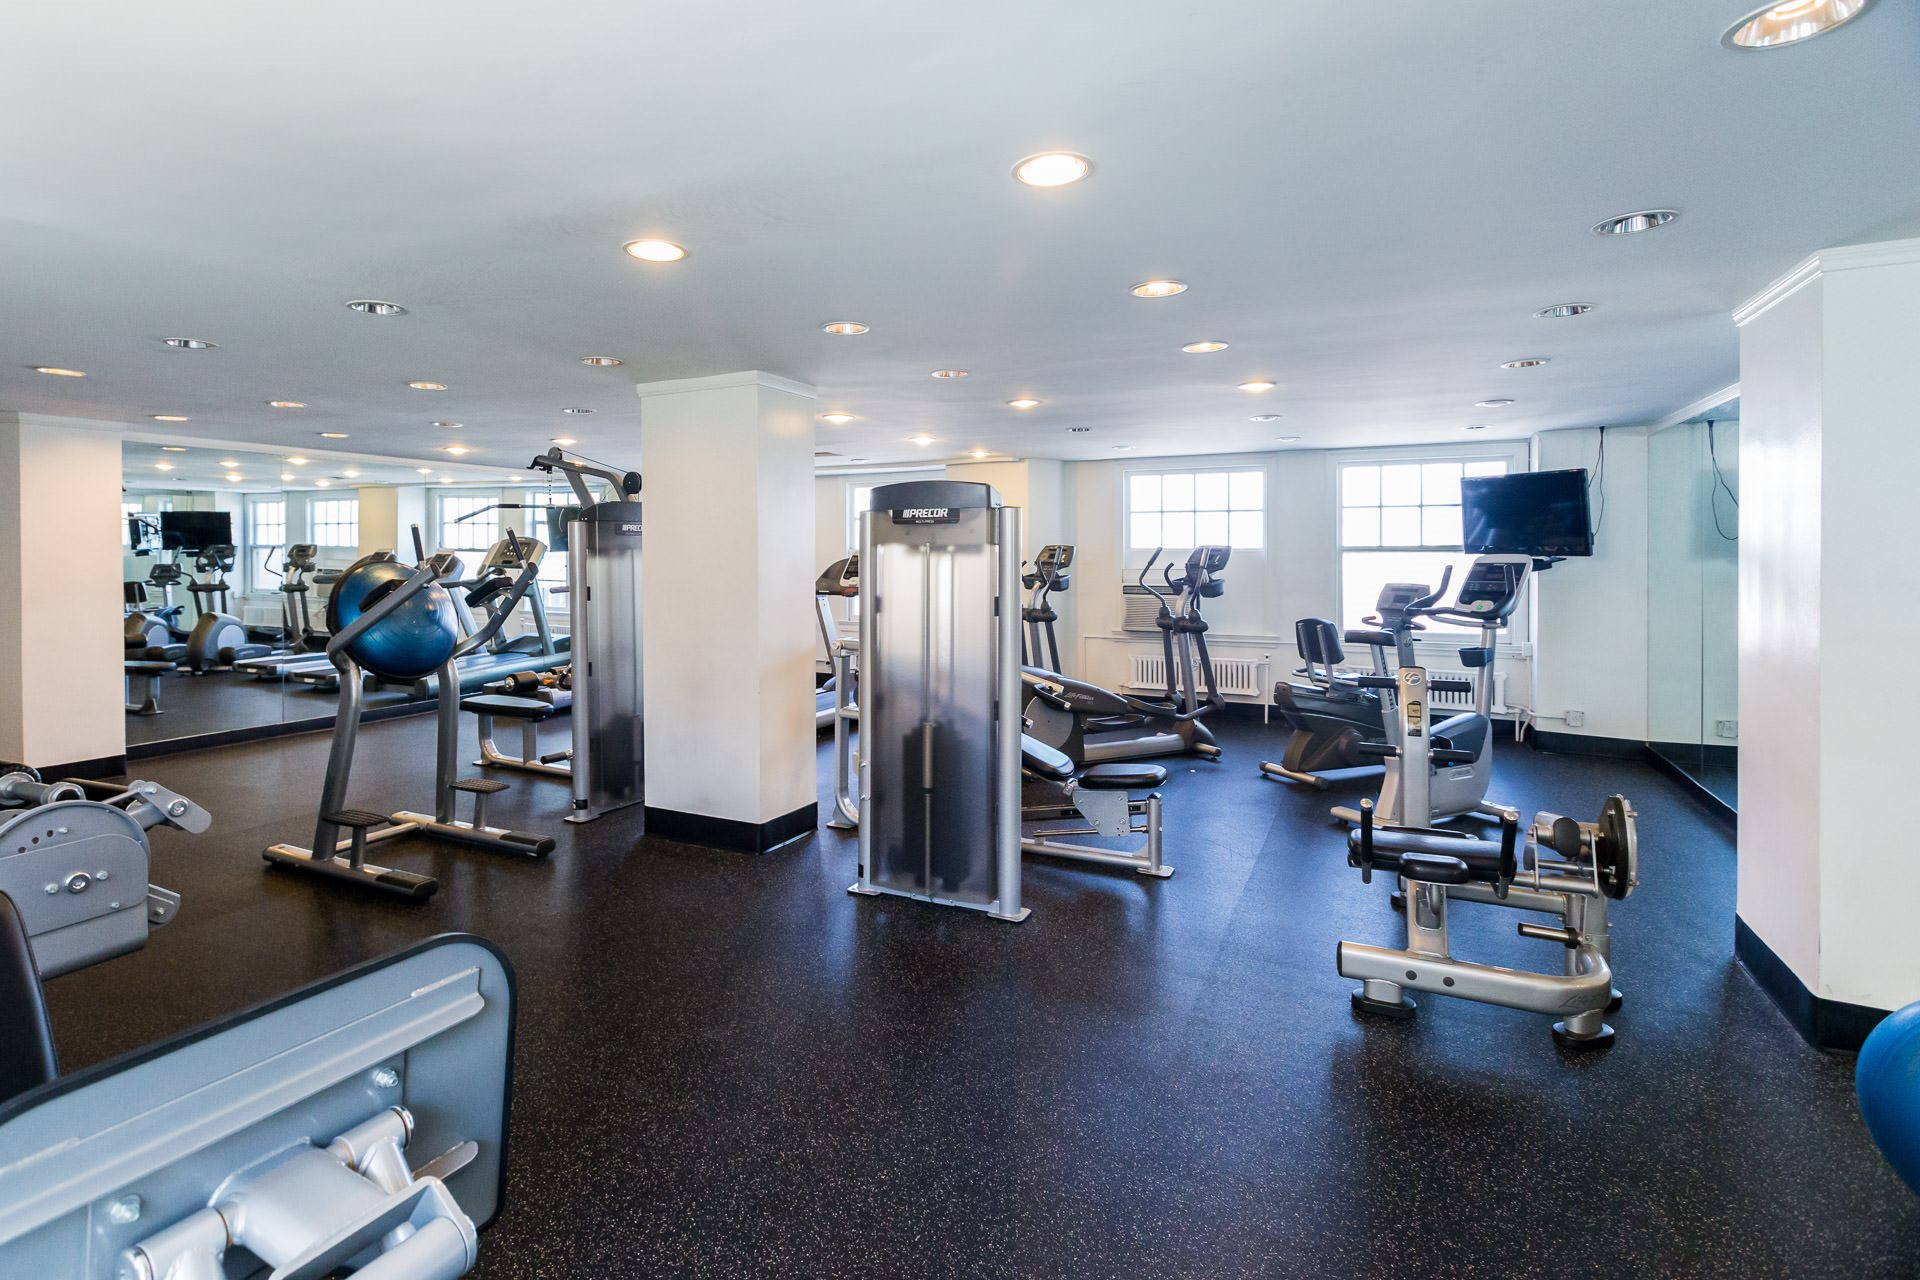 Fitness Center Photo of Wilshire Royale Apartments, 2619 Wilshire Blvd, Los Angeles, CA 90057